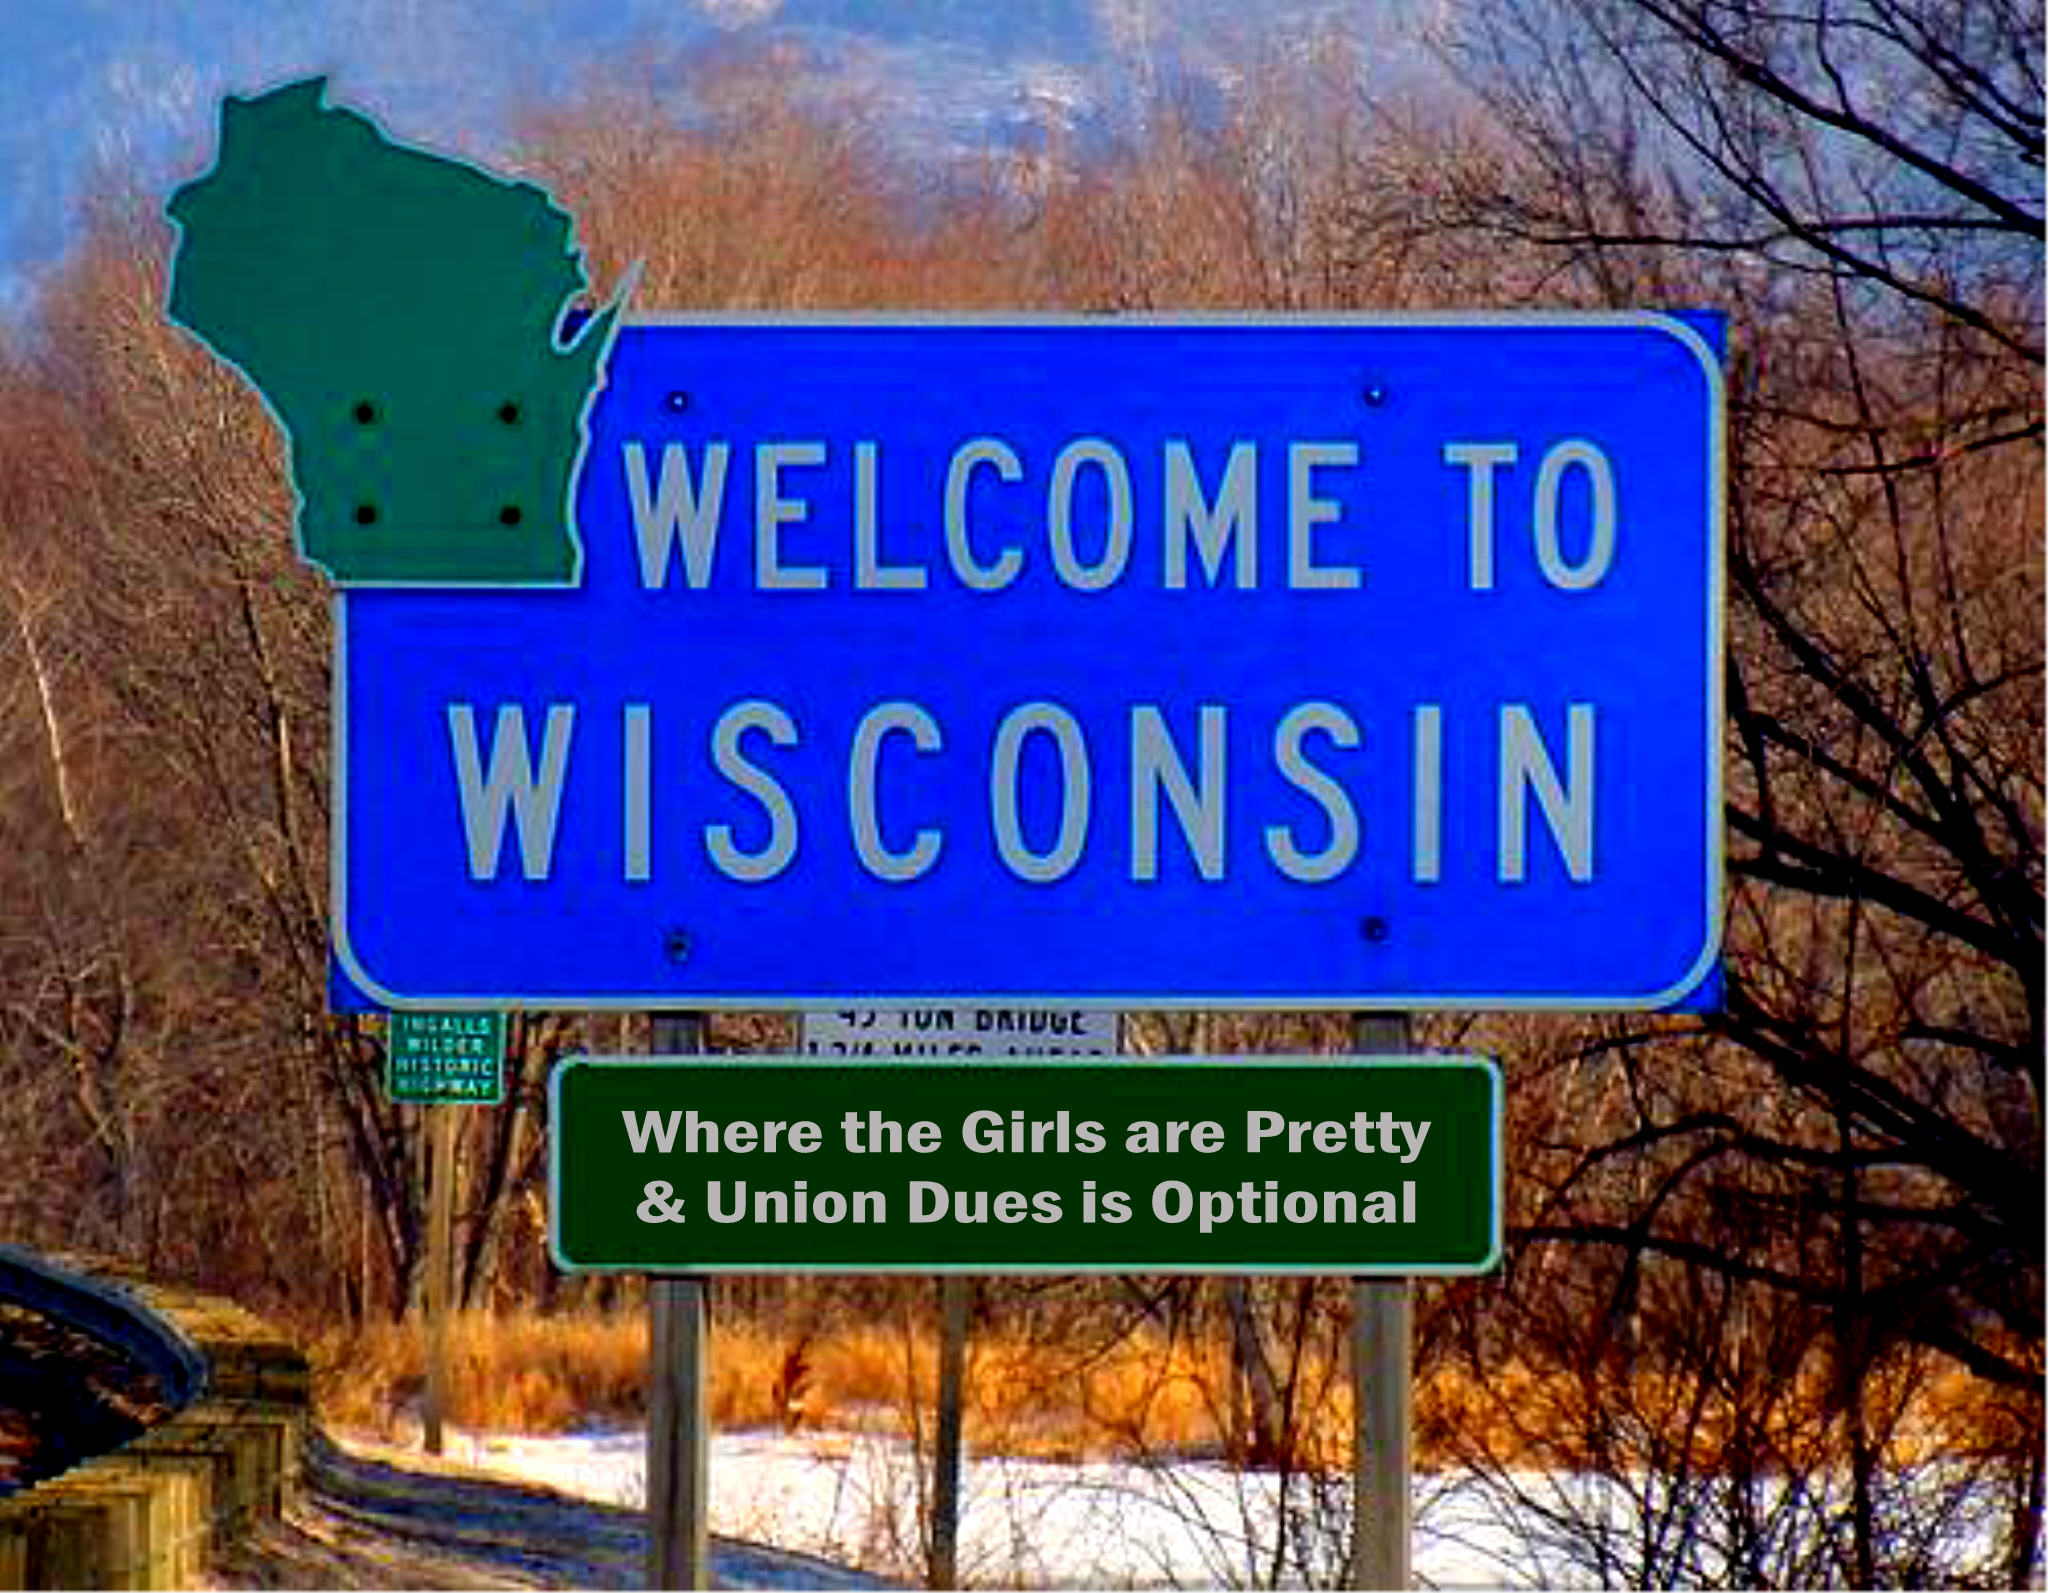 1426 Wisconsin Jokes By Professional Comedians. Snacks Signs. Company Logo Signs Of Stroke. Date Libra Signs. Slurred Speech Signs. Porch Signs Of Stroke. Hidden Signs Of Stroke. Environments Signs. Spur Signs